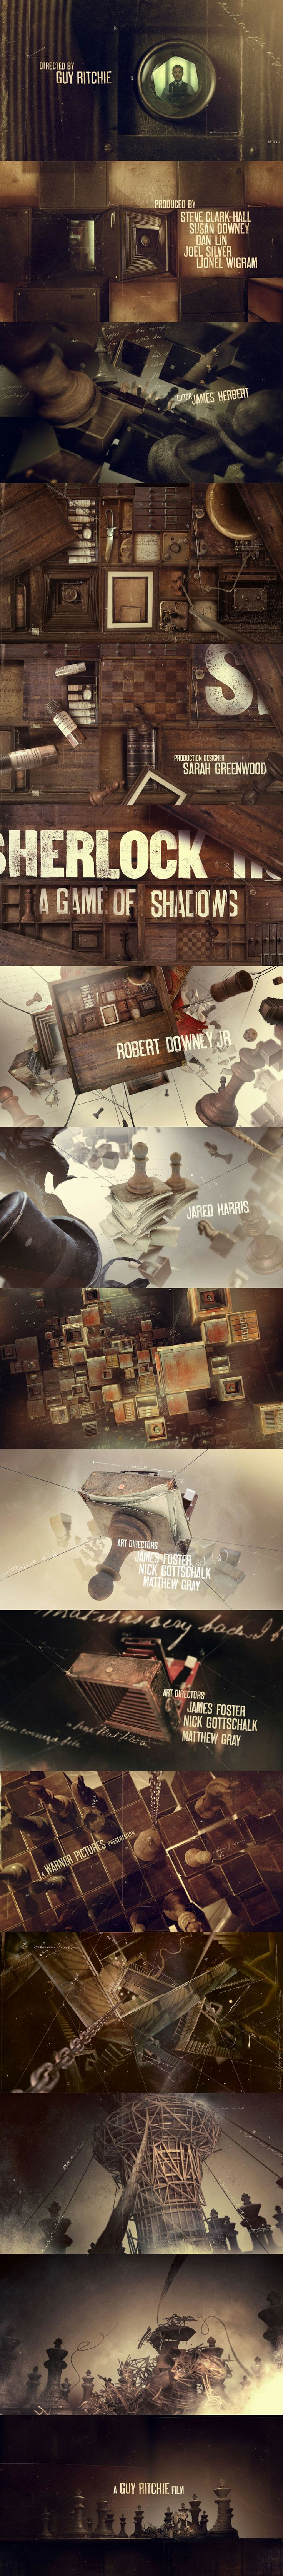 Alternate Sherlock Holmes Opening Credits by Danny Yount.